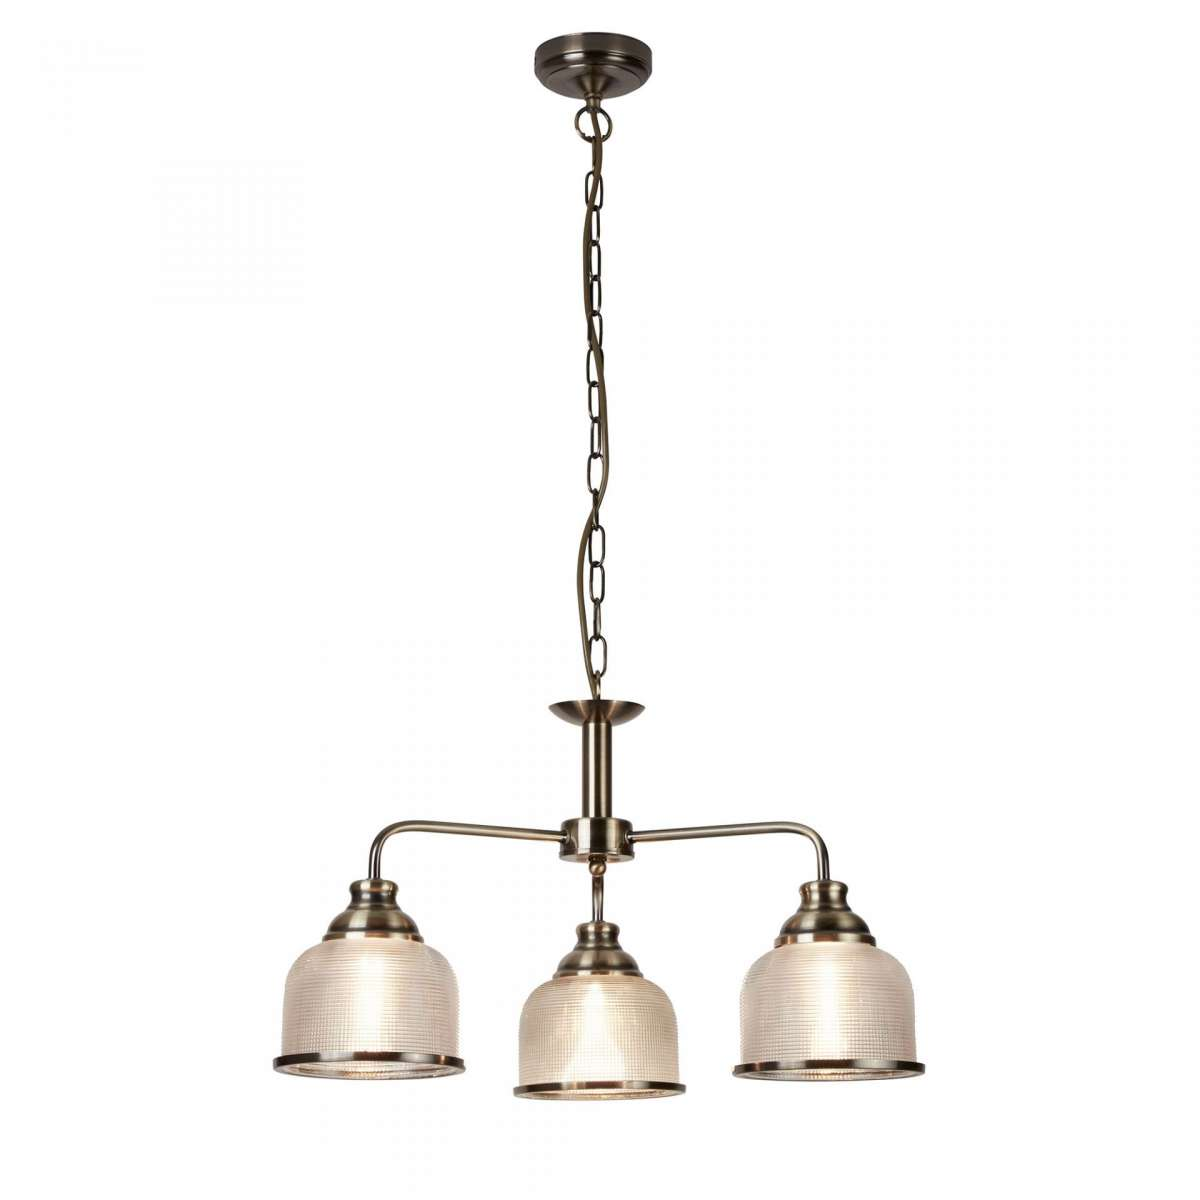 Bistro II 3 Light Ceiling Antique Brass With Halophane Glass